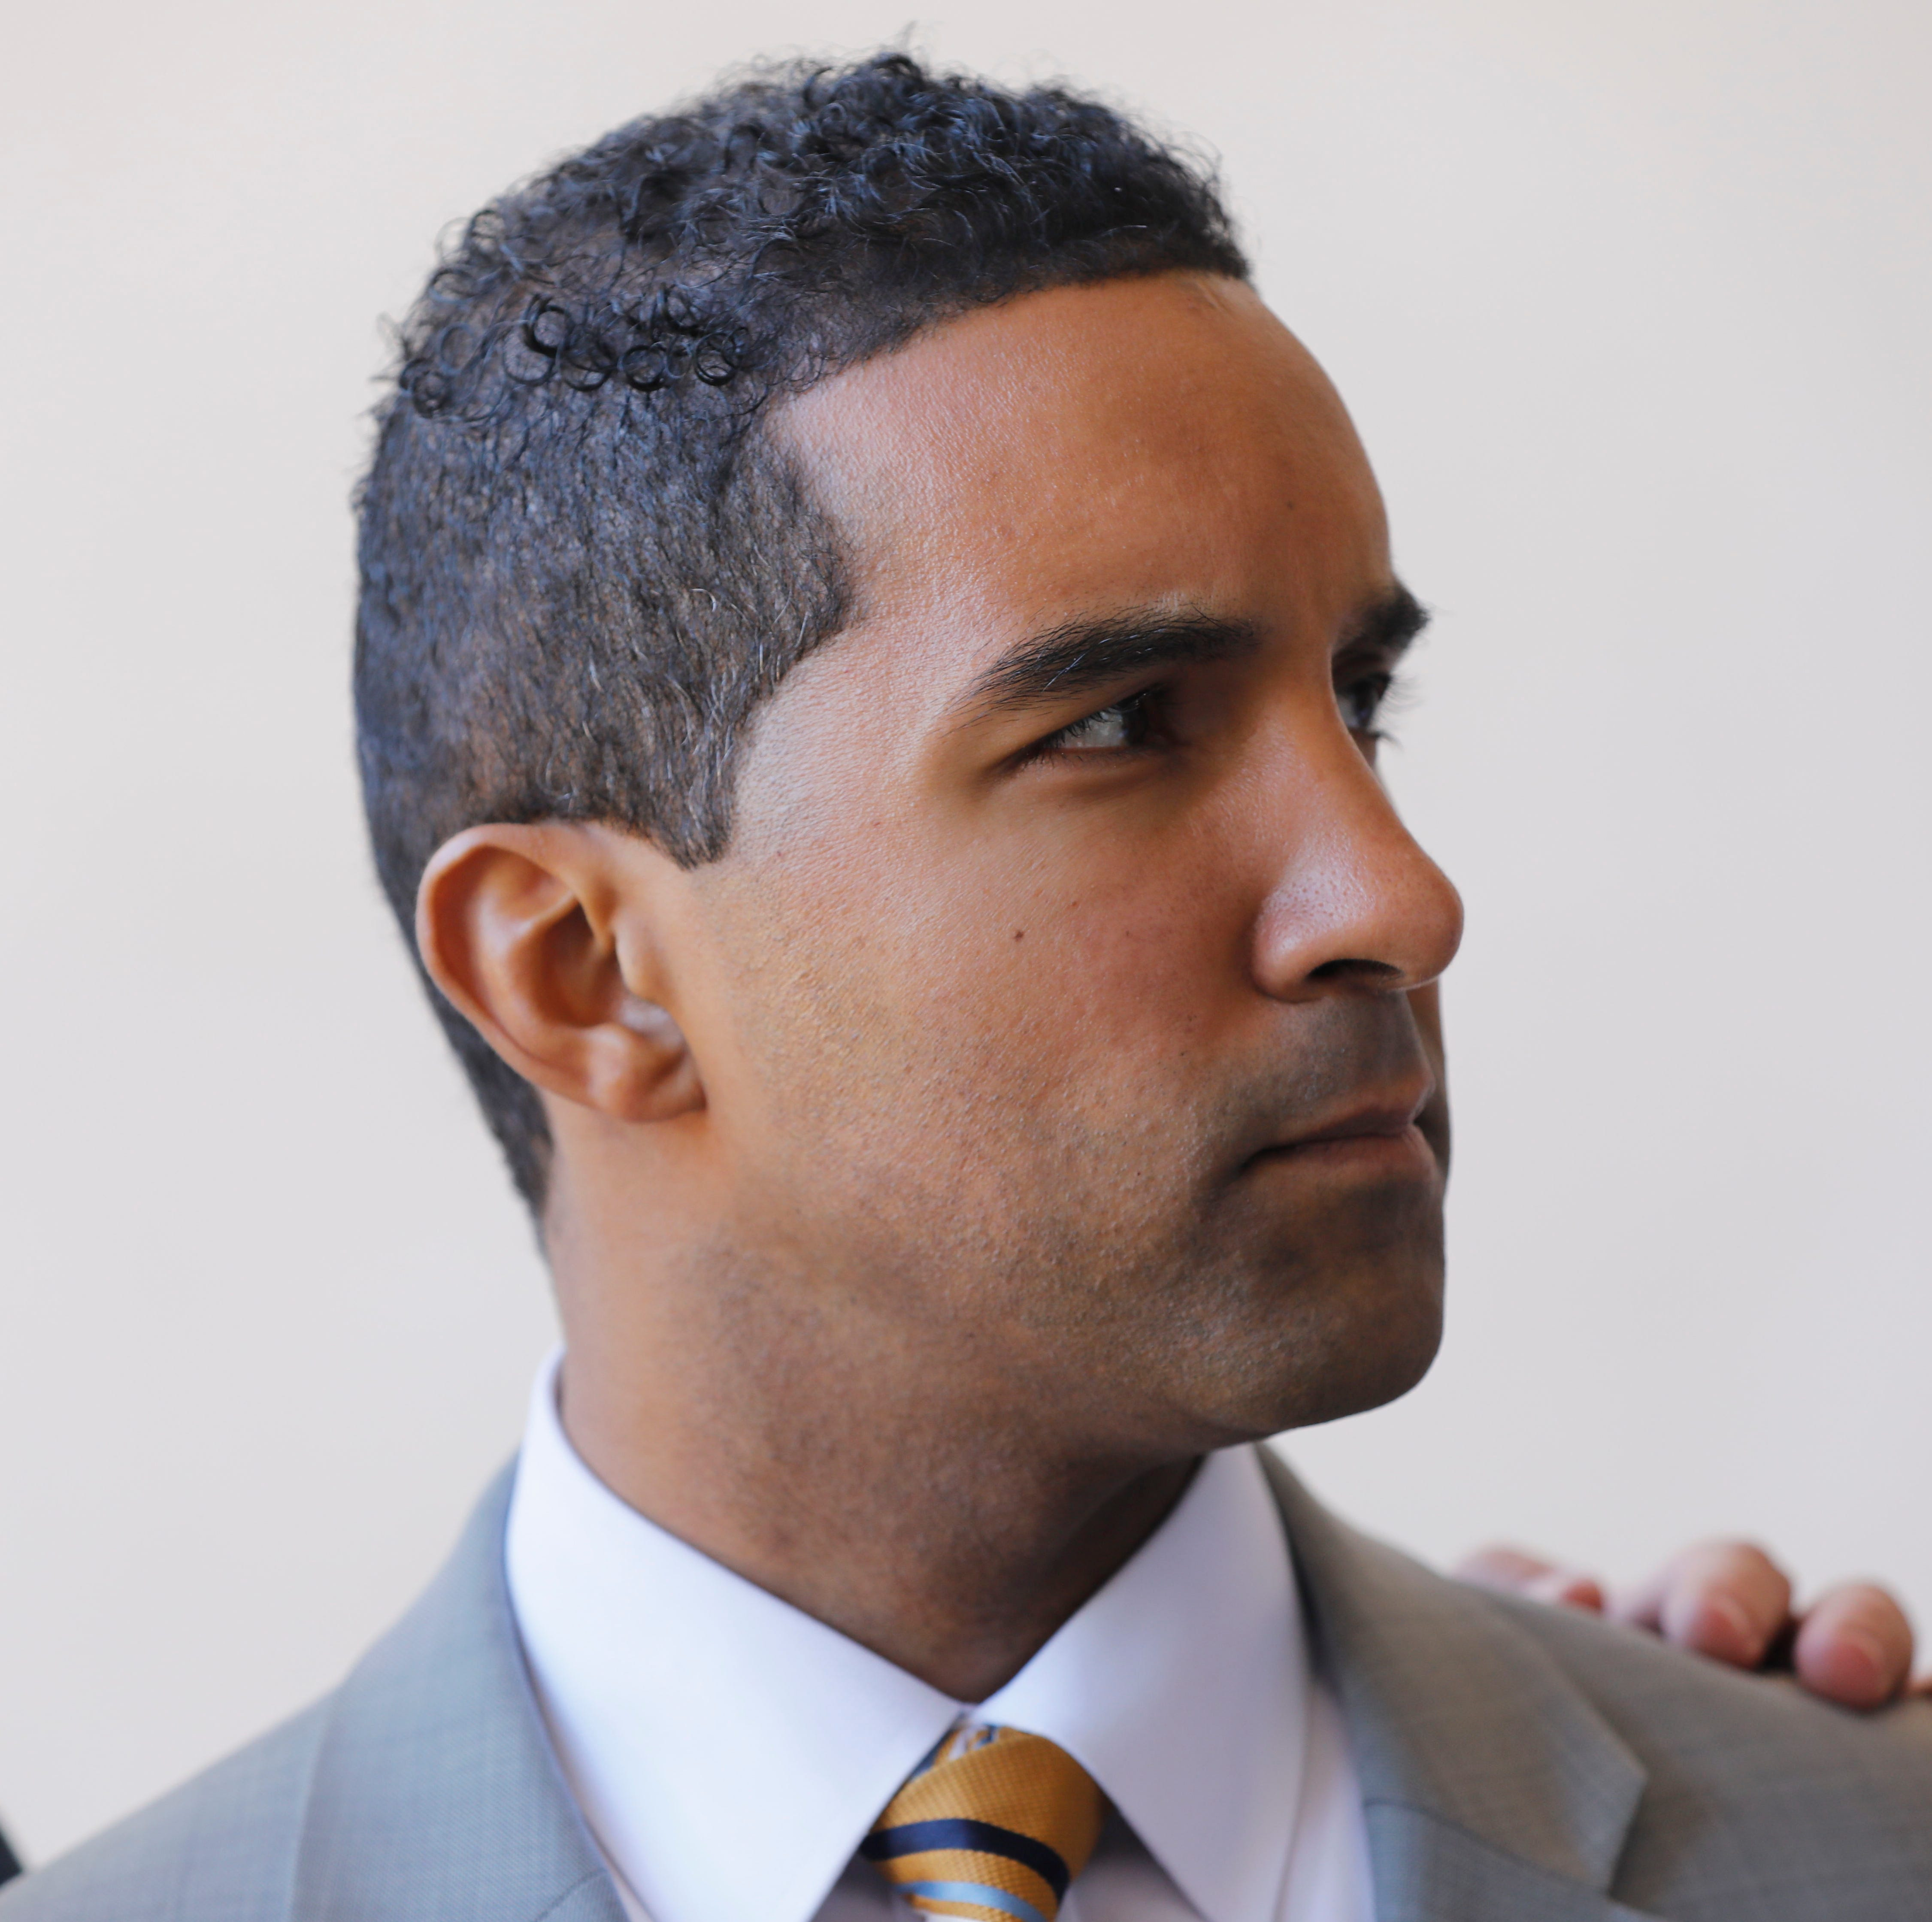 Mayor Thomas, accused of dipping into Mount Vernon funds to pay legal fees, clams up